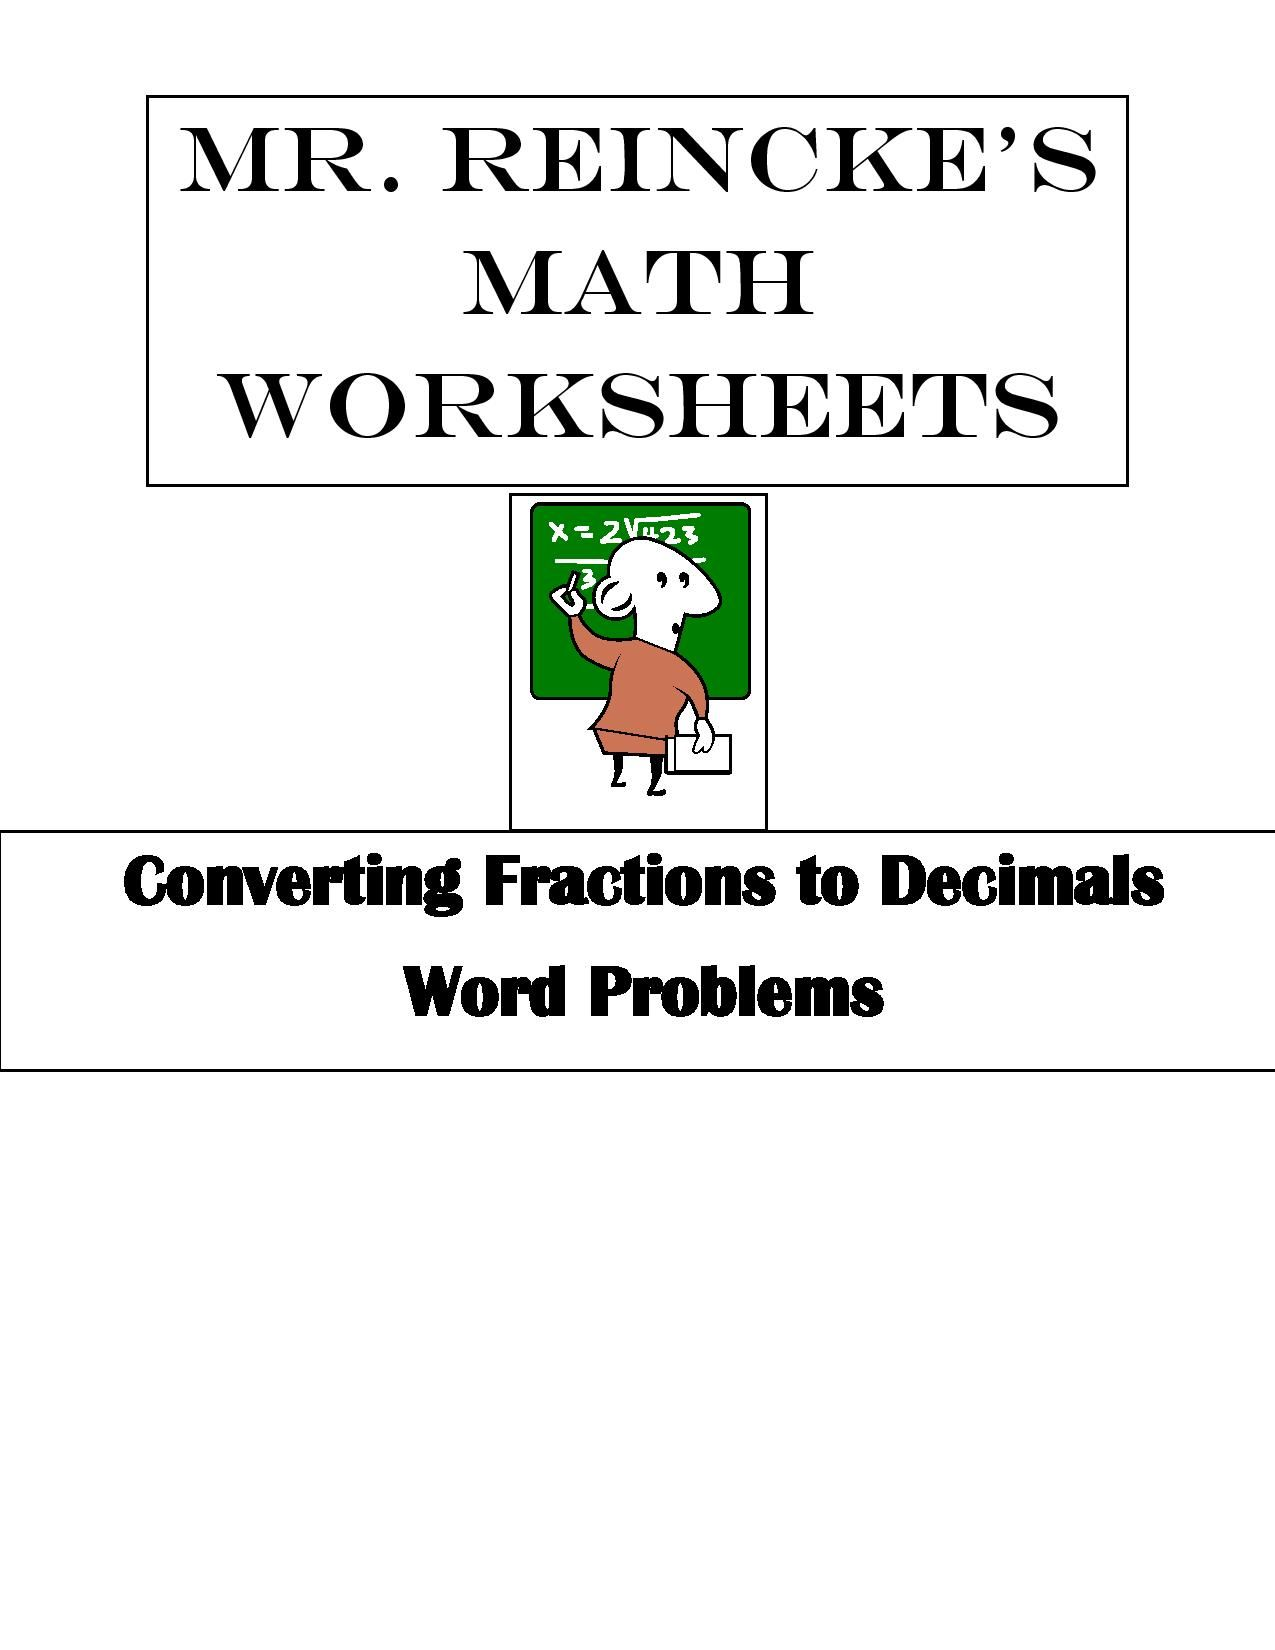 converting fractions to decimals word problems 4 worksheets. Black Bedroom Furniture Sets. Home Design Ideas